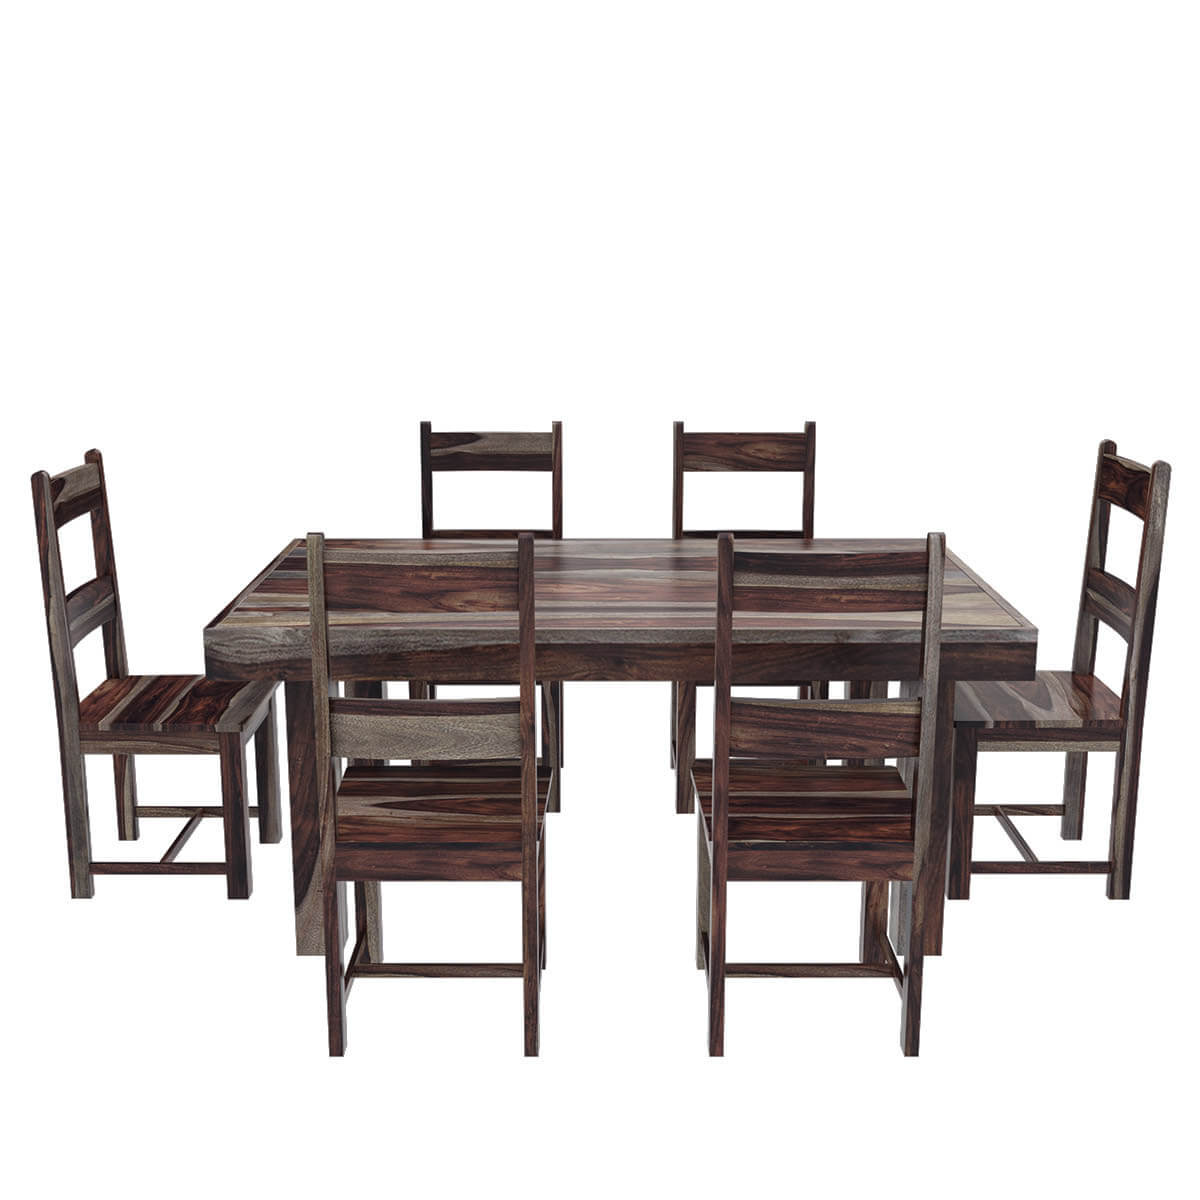 Frisco modern solid wood casual rustic dining room table for Modern dining table and chairs set